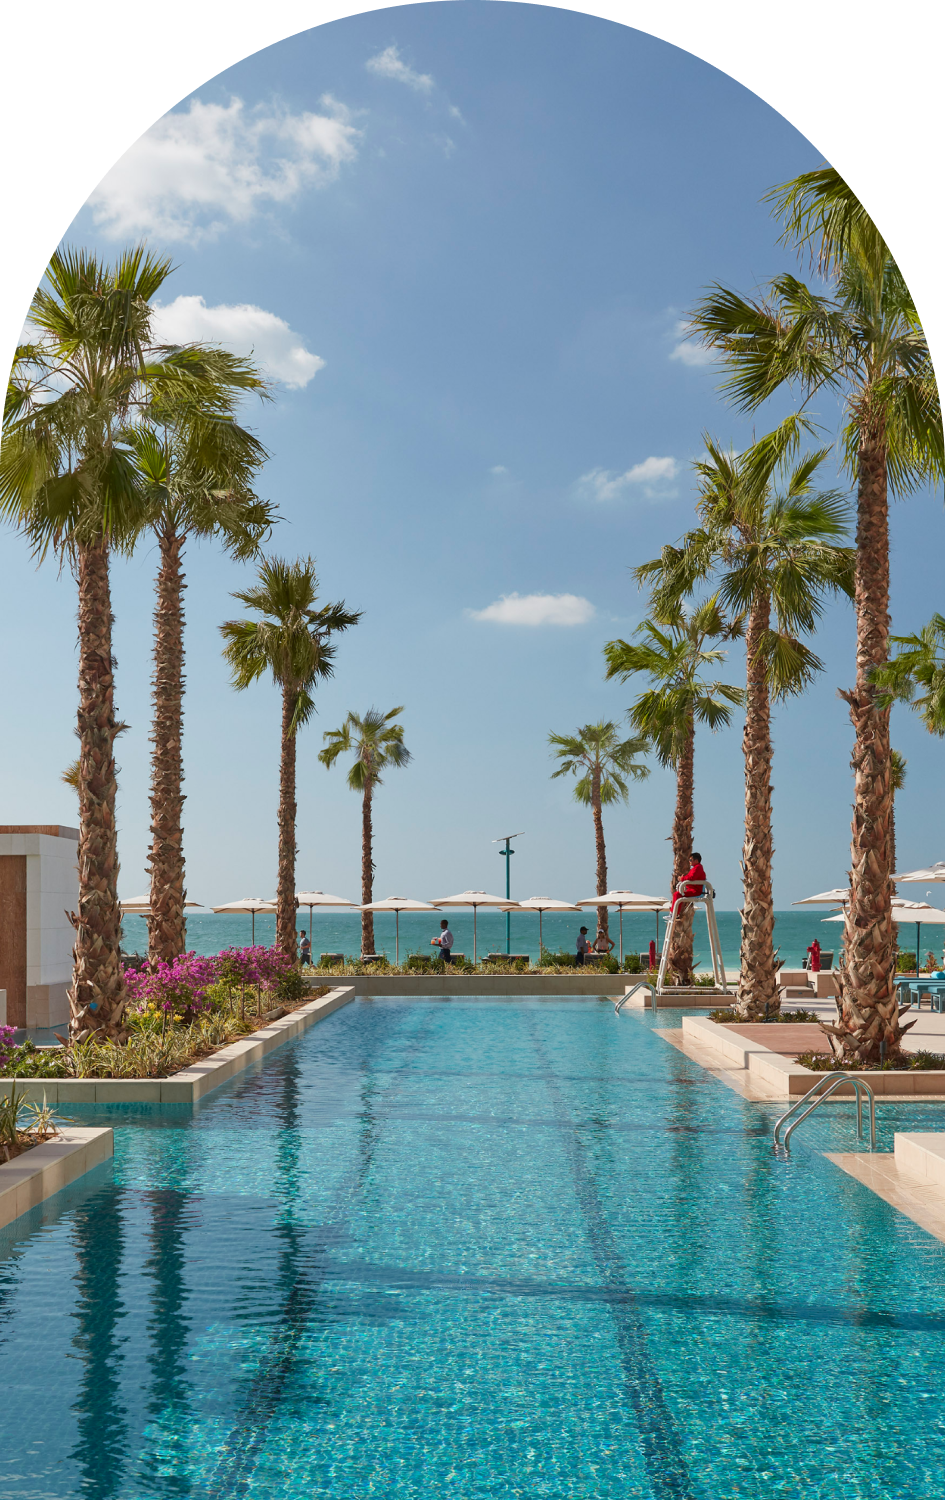 View overlooking the pool towards the sea with palm trees lining the sides.